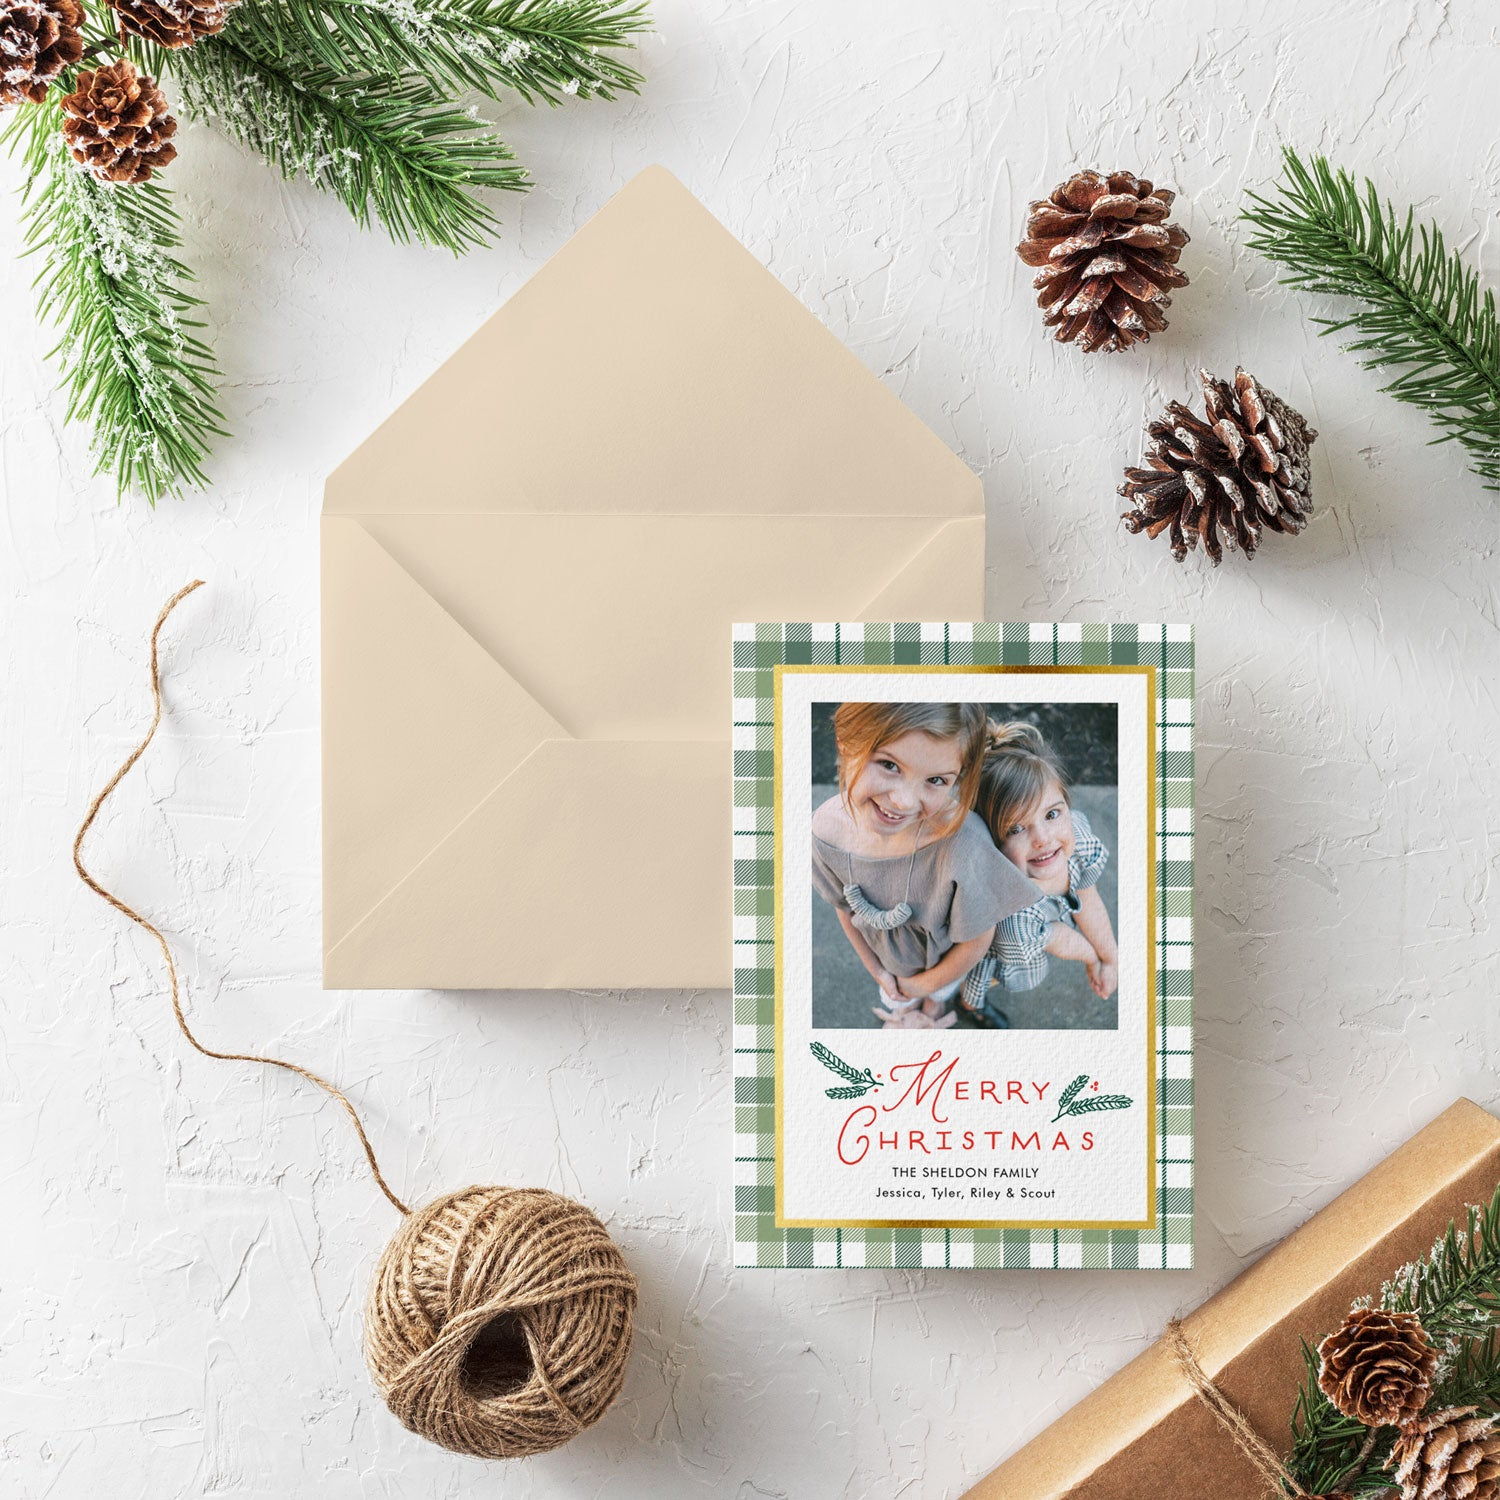 Fir Plaid one photo green plaid Christmas photo card by Erika Firm for Simply To Impress 2019